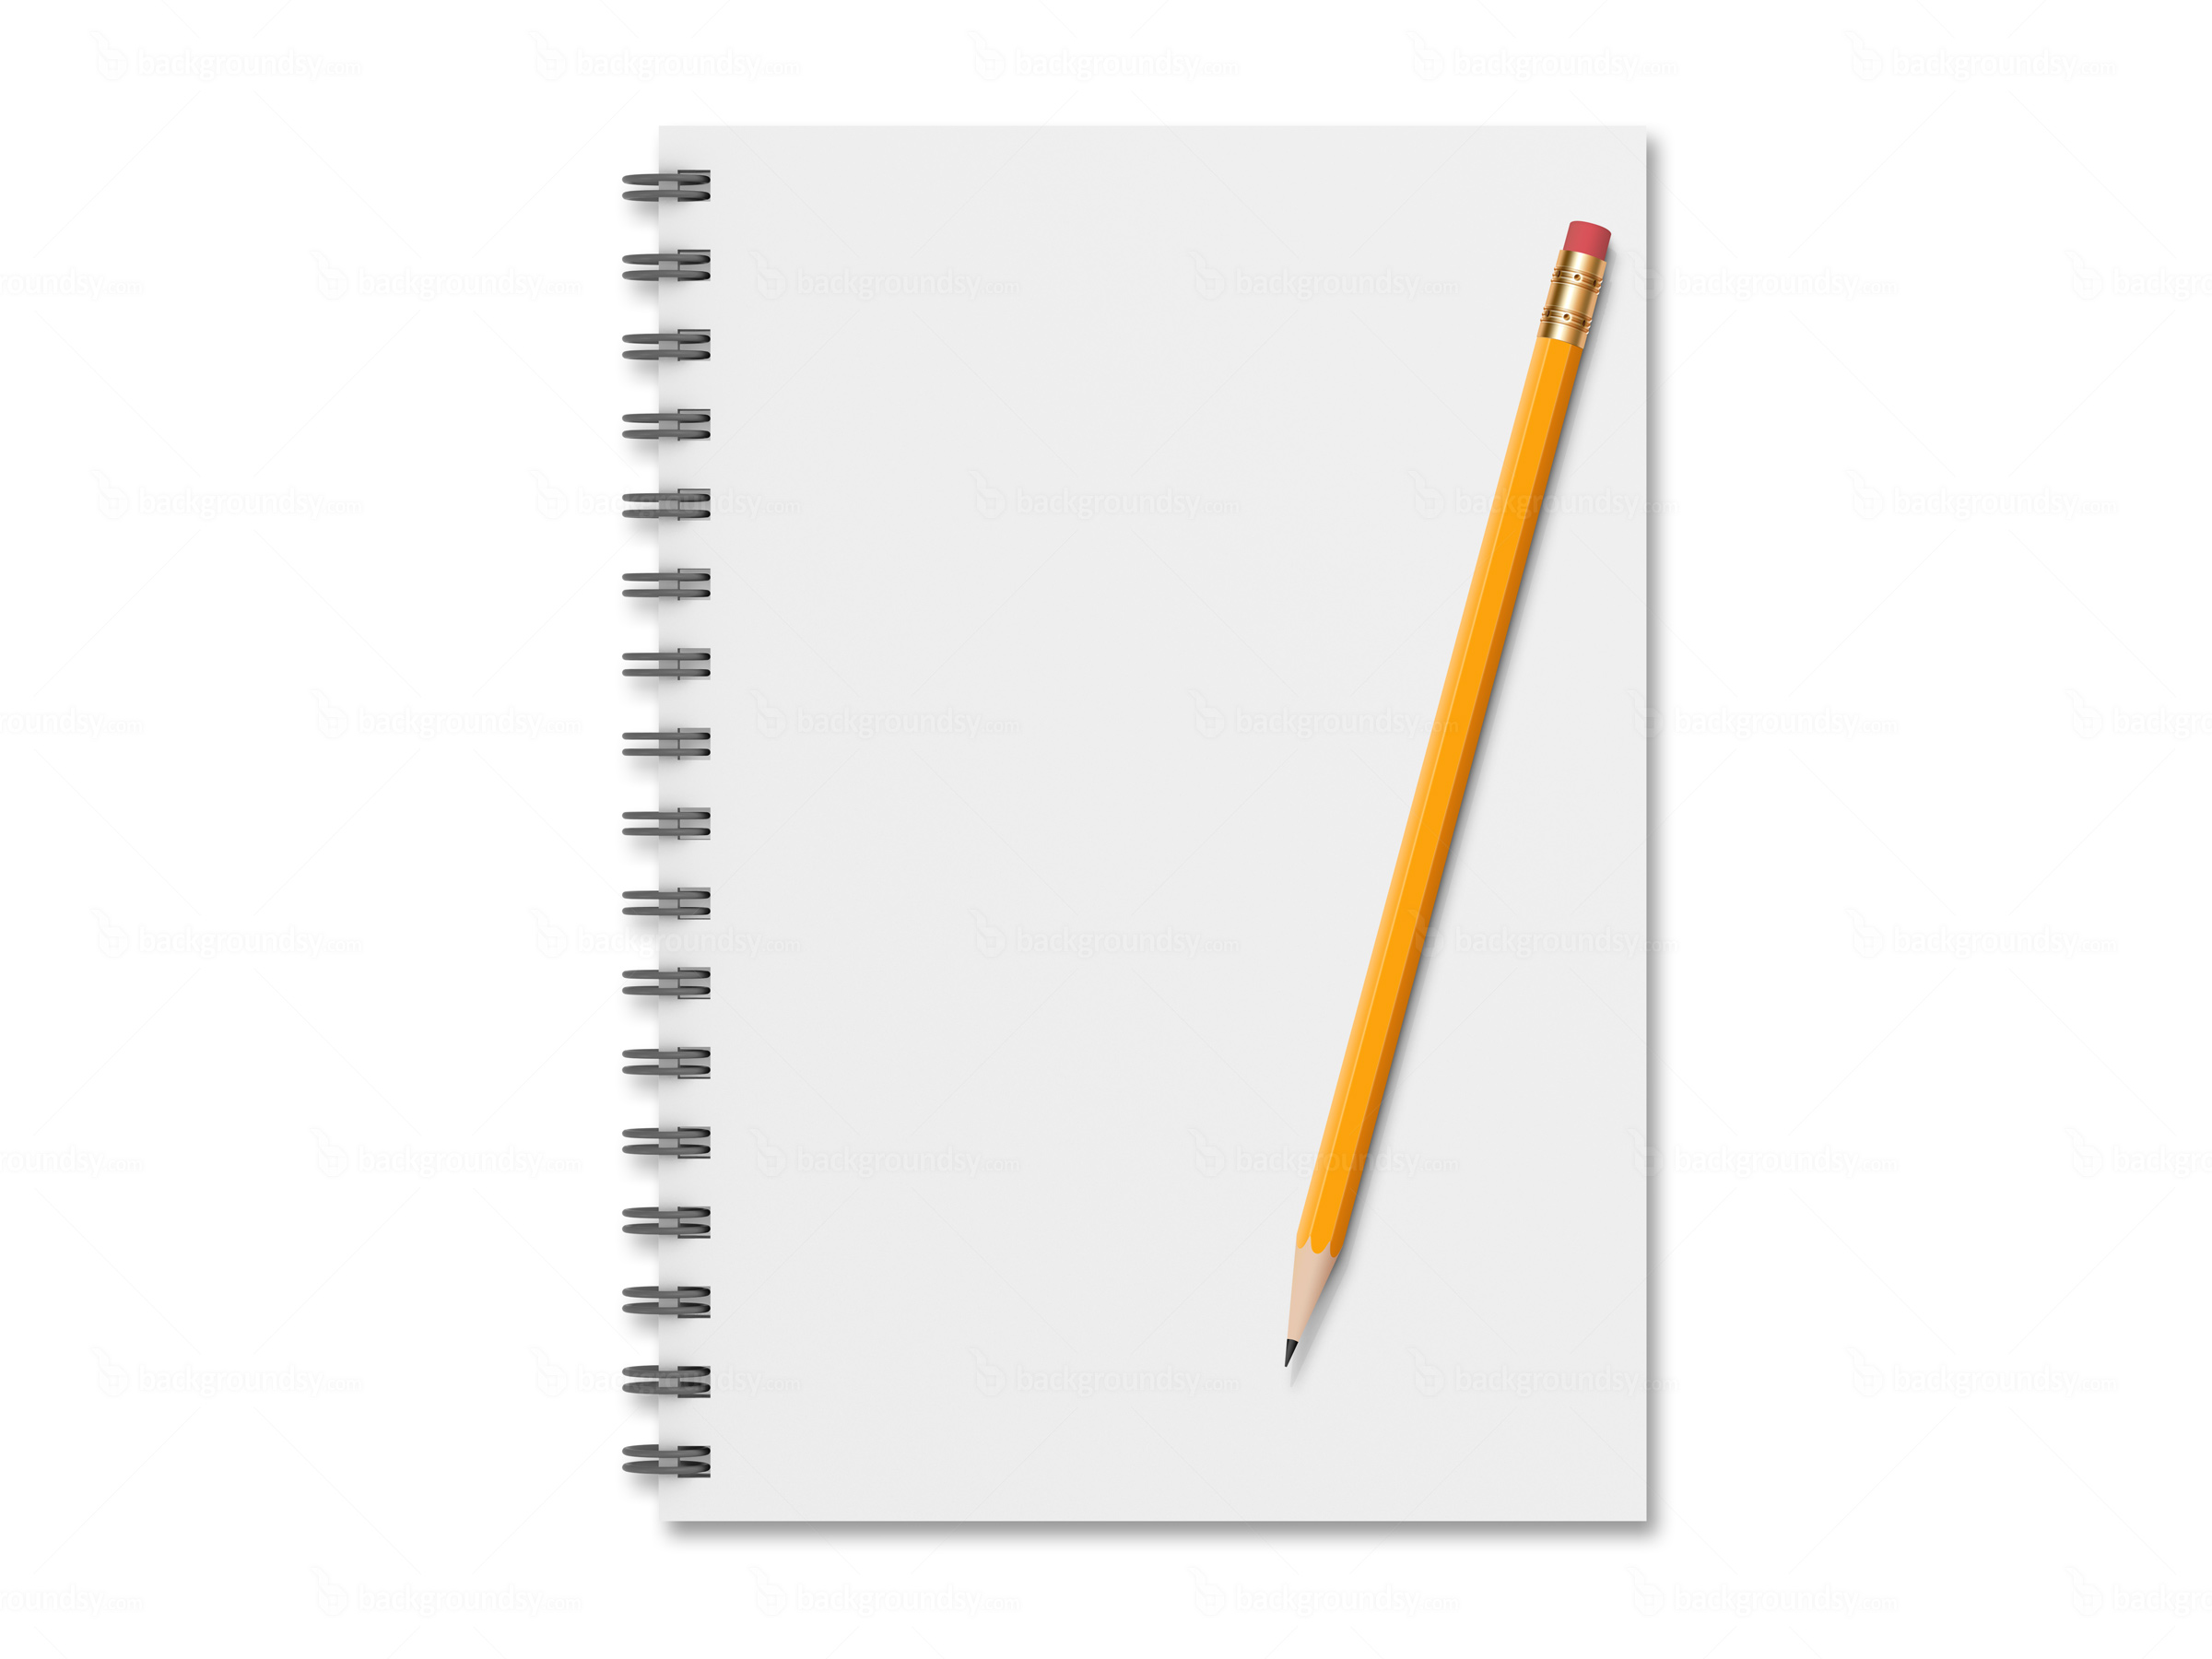 notebook-with-pencil.jpg